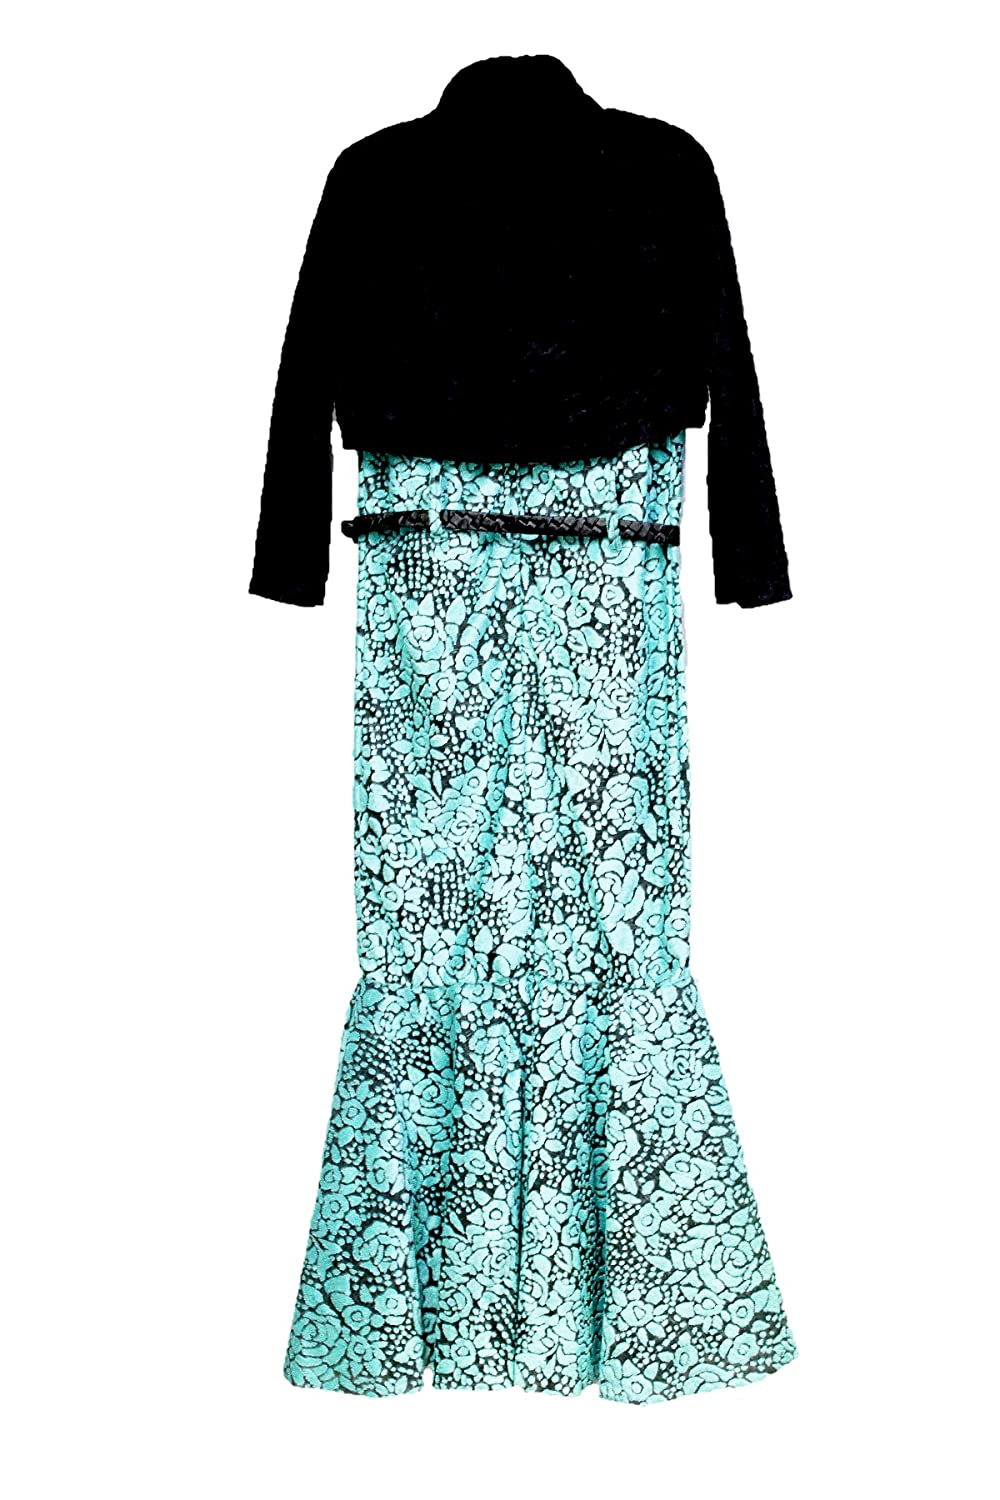 GIRL\'S PARTY DRESS BLUE FISH CUTTING: Amazon.in: Clothing & Accessories